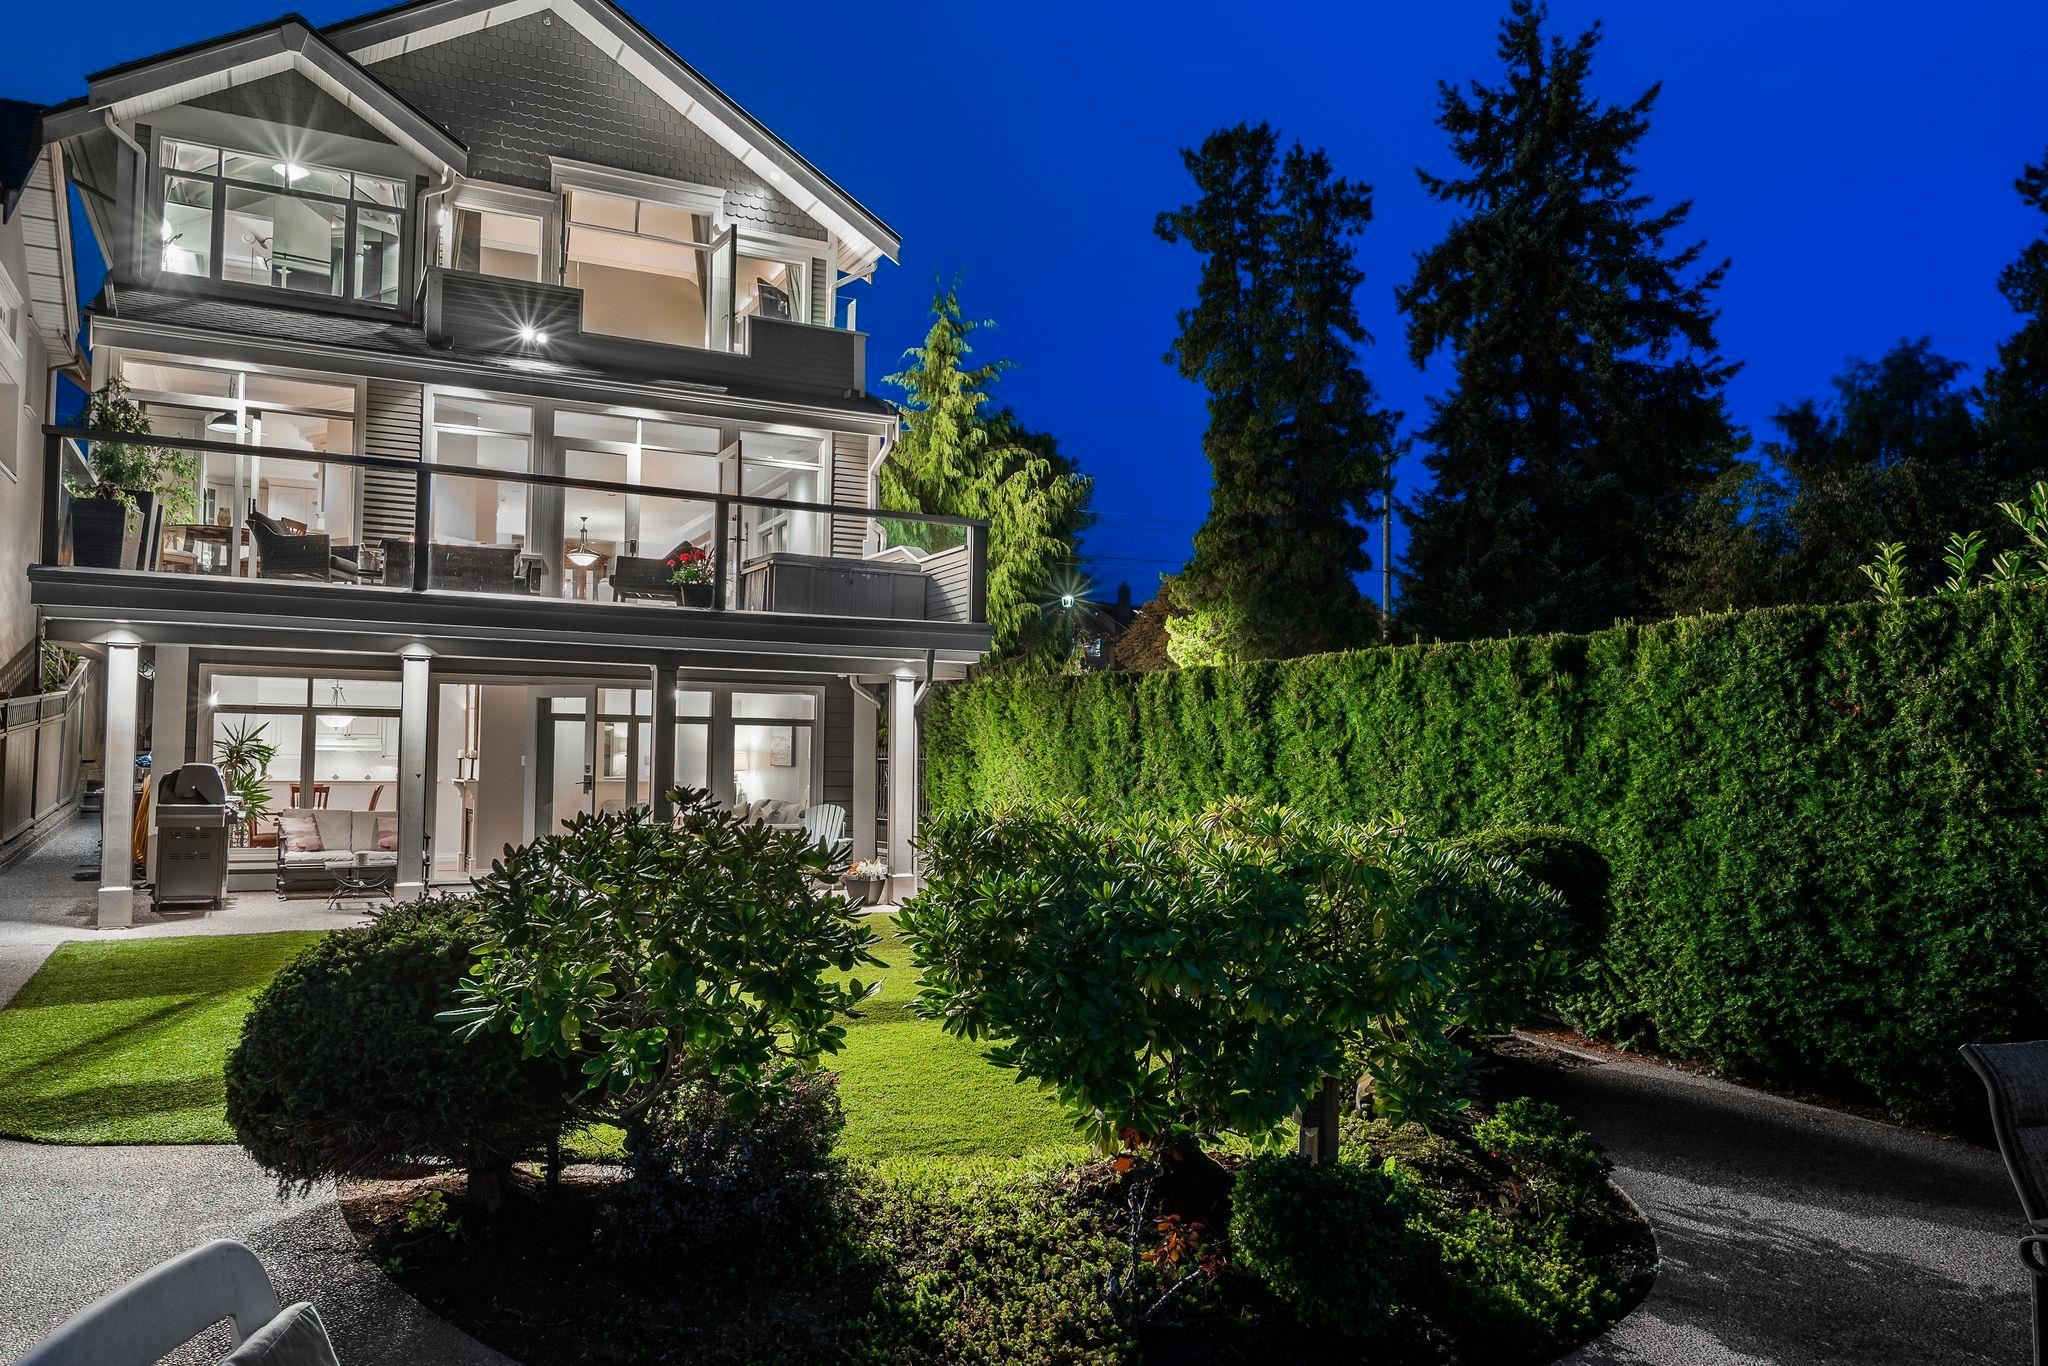 Main Photo: 3197 POINT GREY Road in Vancouver: Kitsilano House for sale (Vancouver West)  : MLS®# R2613343